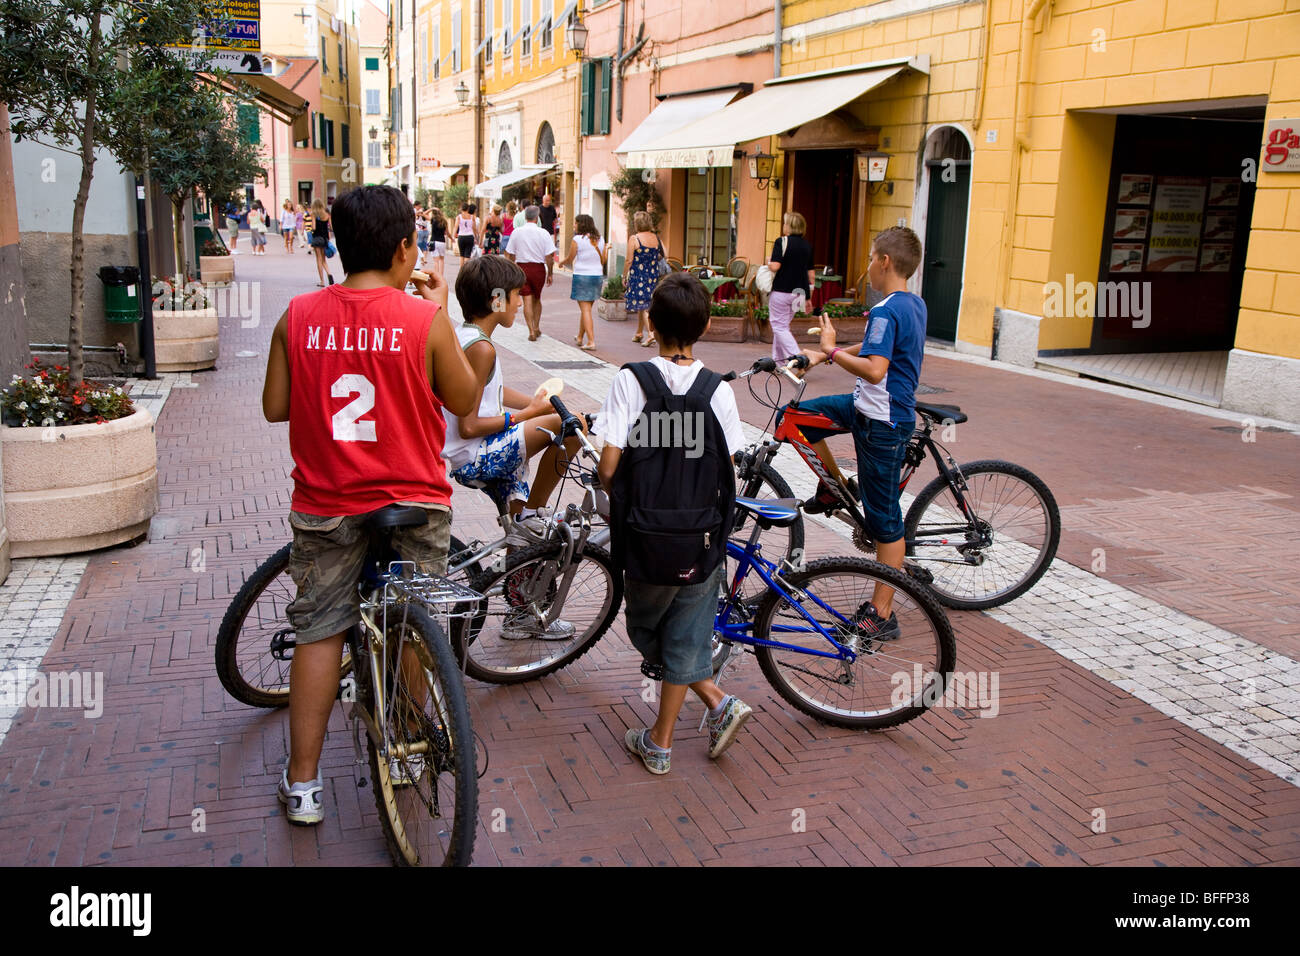 children on bicycles, Imperia Italy - Stock Image